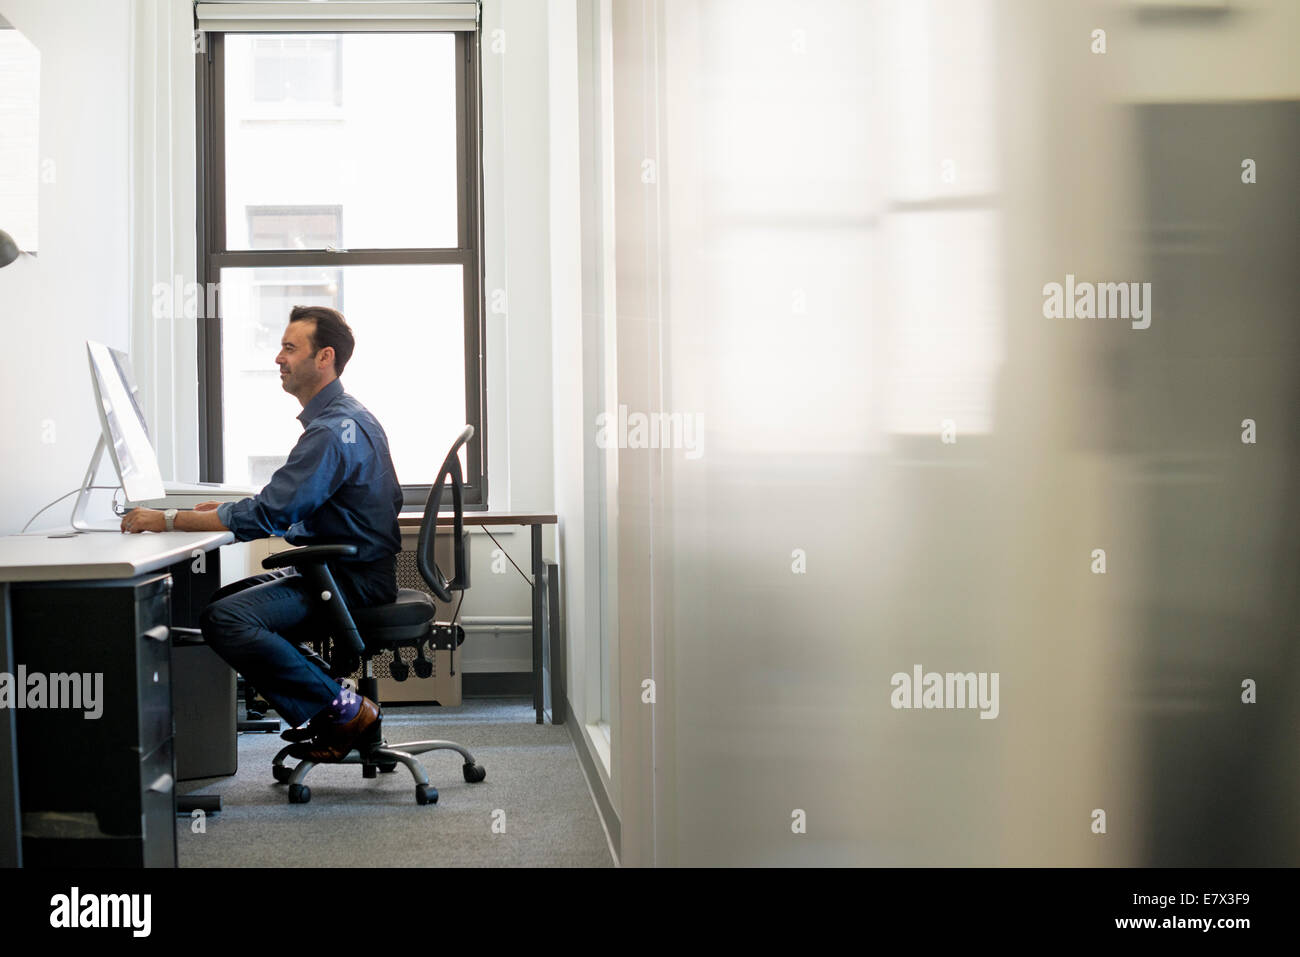 Office life. A man in casual clothing seated at a desk looking at a computer screen. - Stock Image